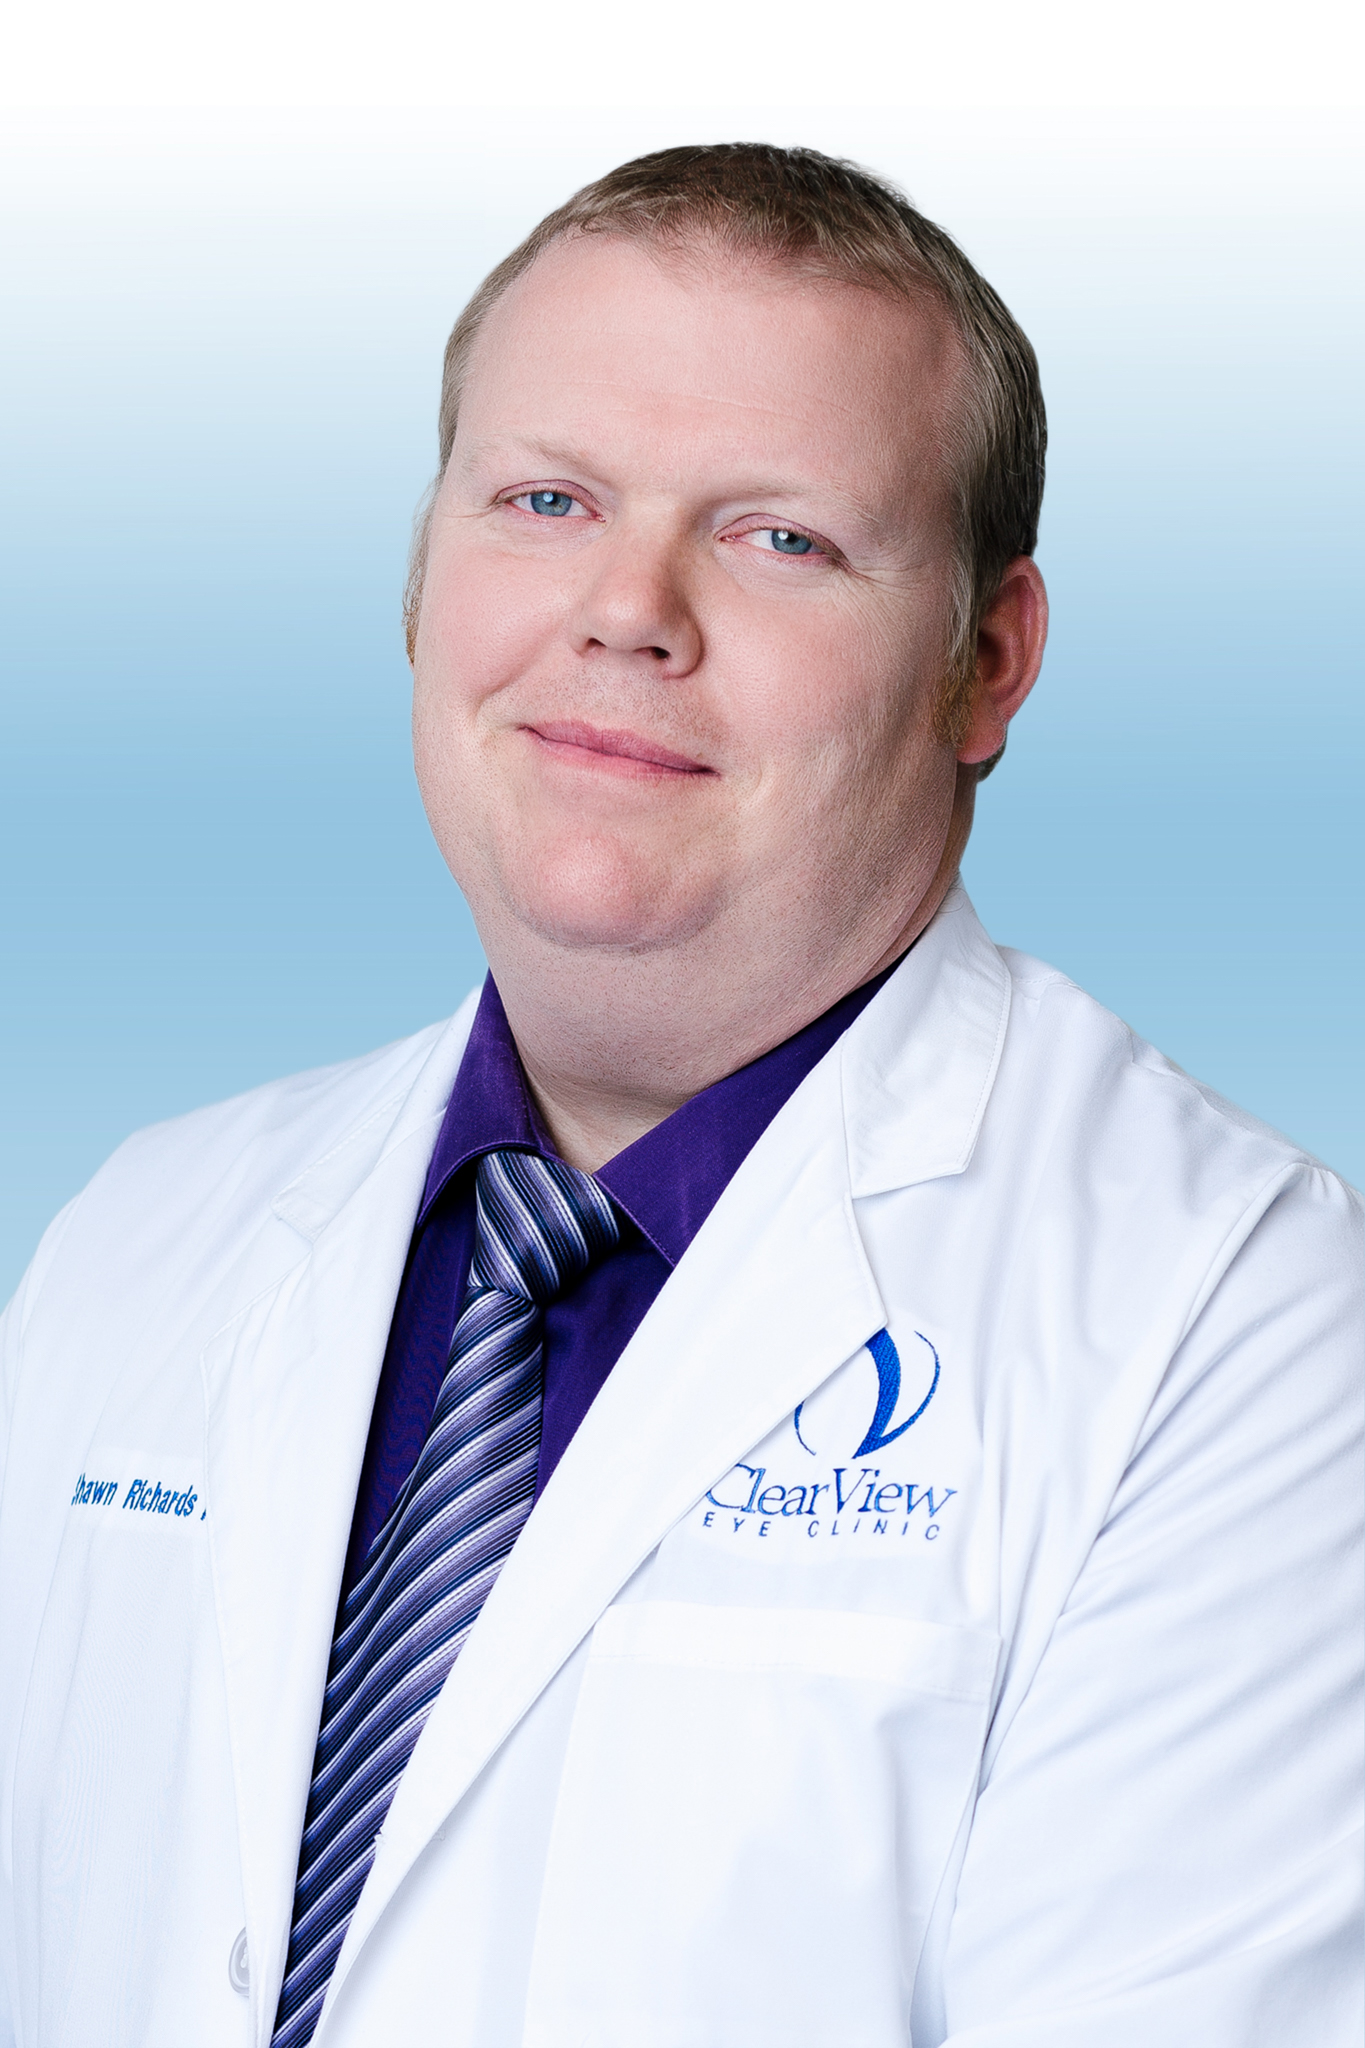 Shawn C. Richards, MD